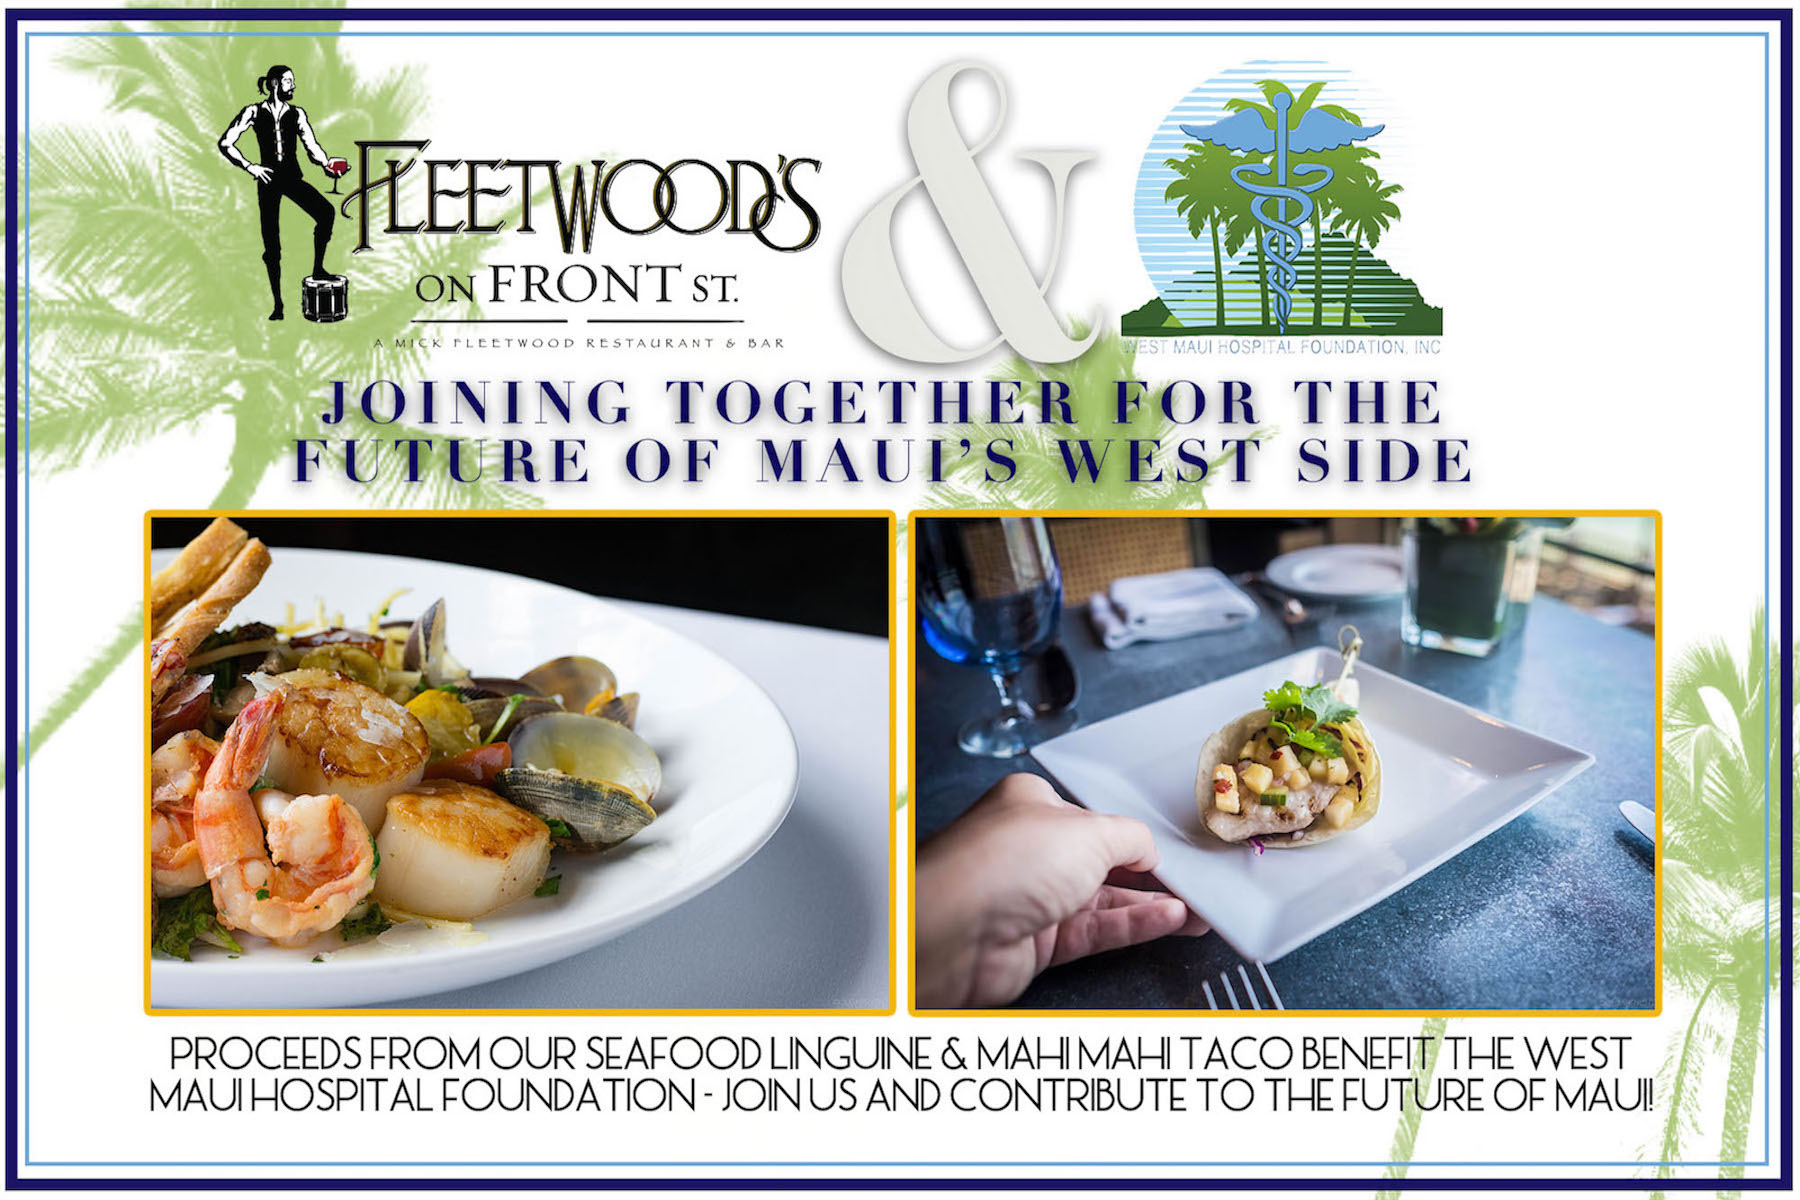 - Click here to learn more!www.fleetwoodsonfrontst.com